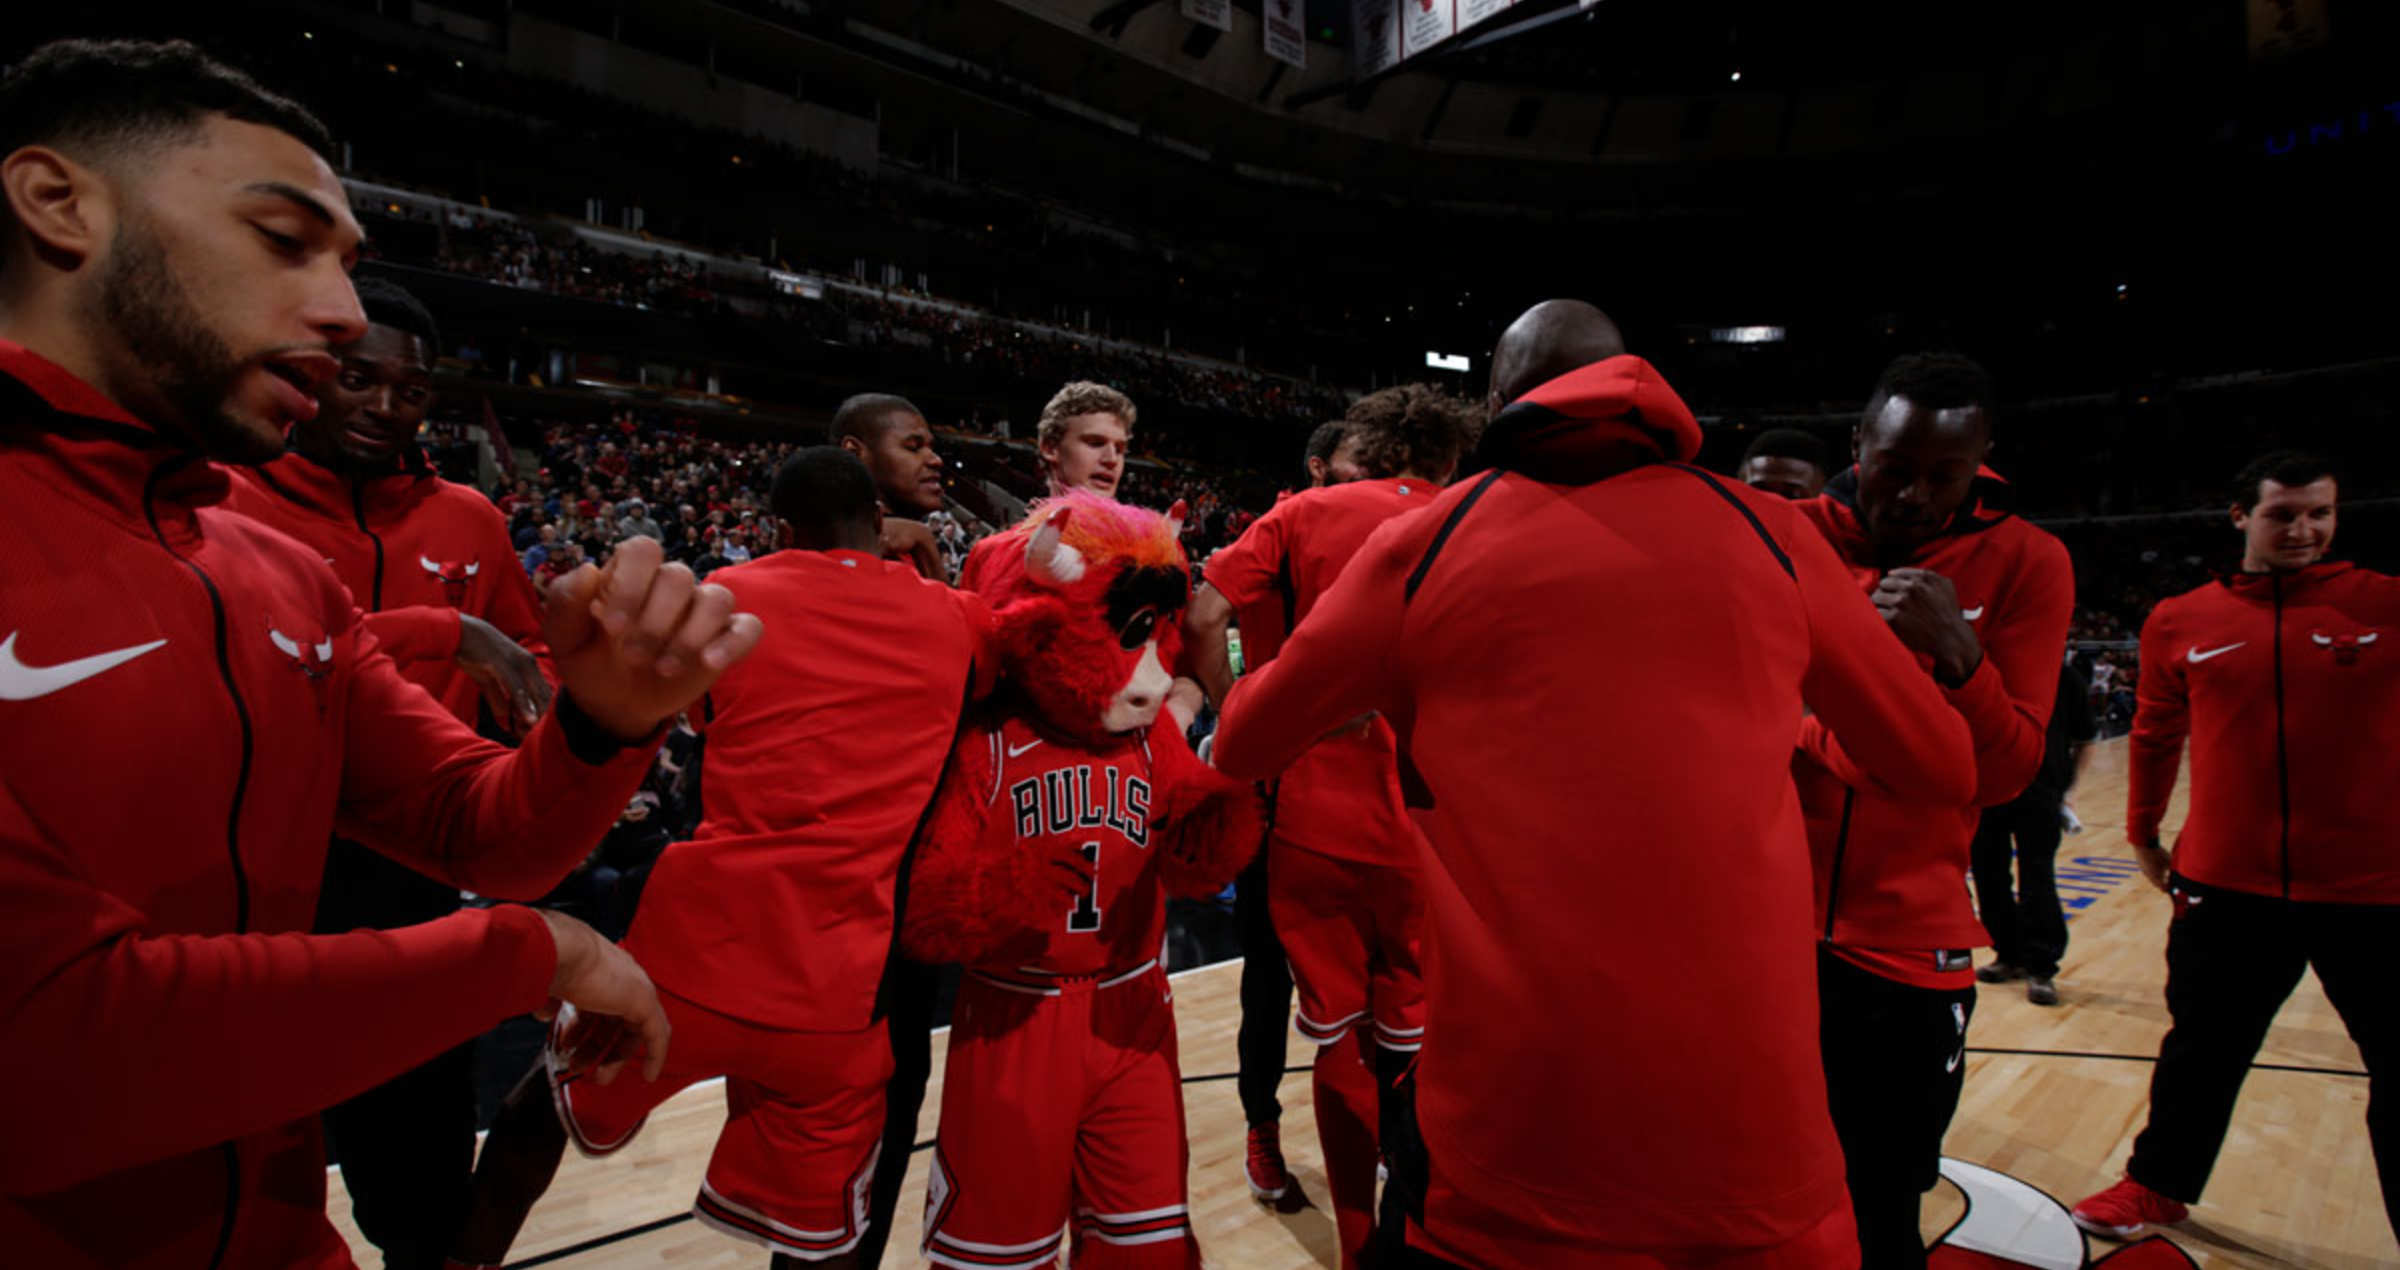 The Chicago Bulls huddles as a team before the game.